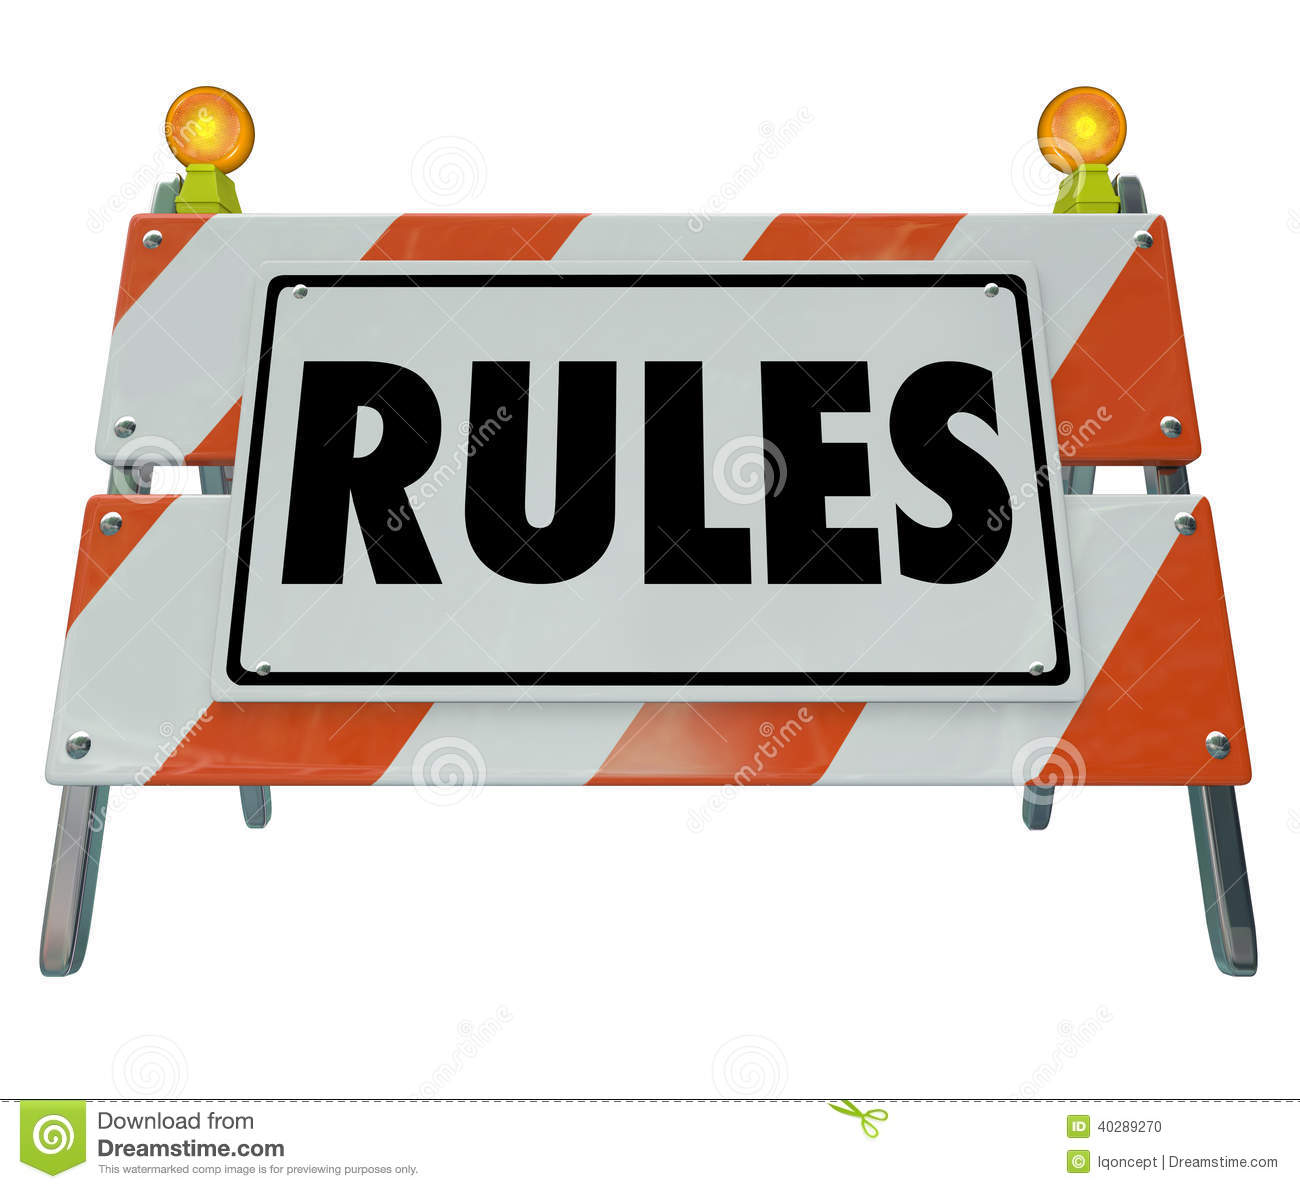 traffic map with Stock Photo Rules Sign Barricade Guidelines Laws  Pliance Word Road Construction To Illustrate Following Gregulations Image40289270 on File RWBA Flughafen R further Stock Photo Rules Sign Barricade Guidelines Laws  pliance Word Road Construction To Illustrate Following Gregulations Image40289270 additionally Citymaps 285 Beijing besides Latvia port VENTSPILS together with 3208129302.